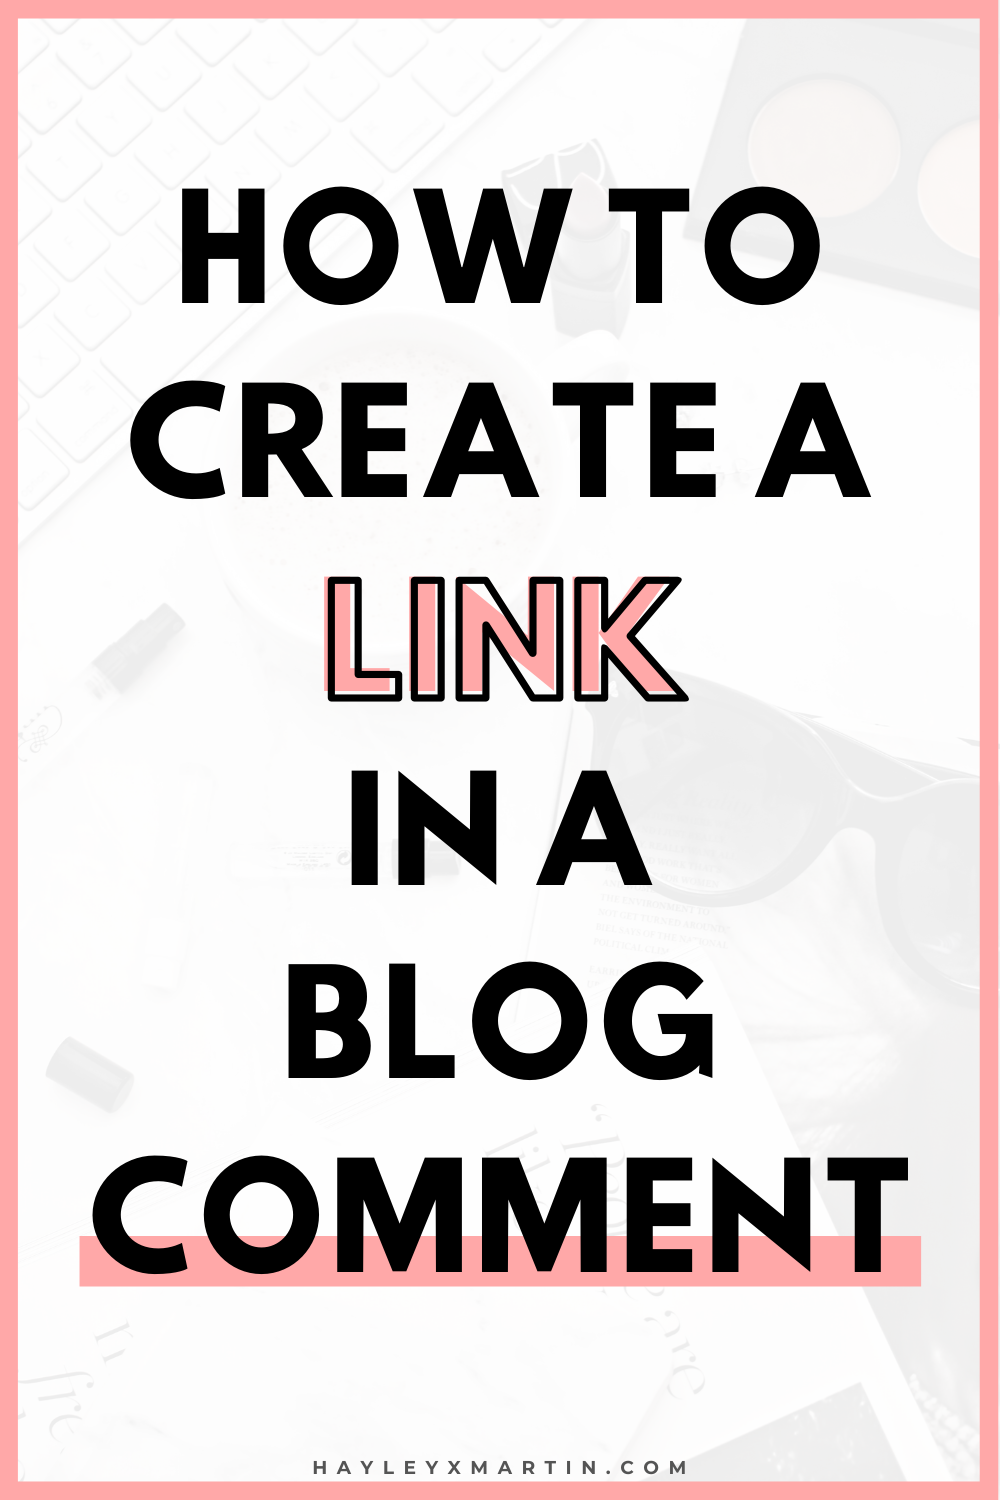 How To Create A Link In A Blog Comment In 2020 Blog Full Time Blogging Blogging Tips